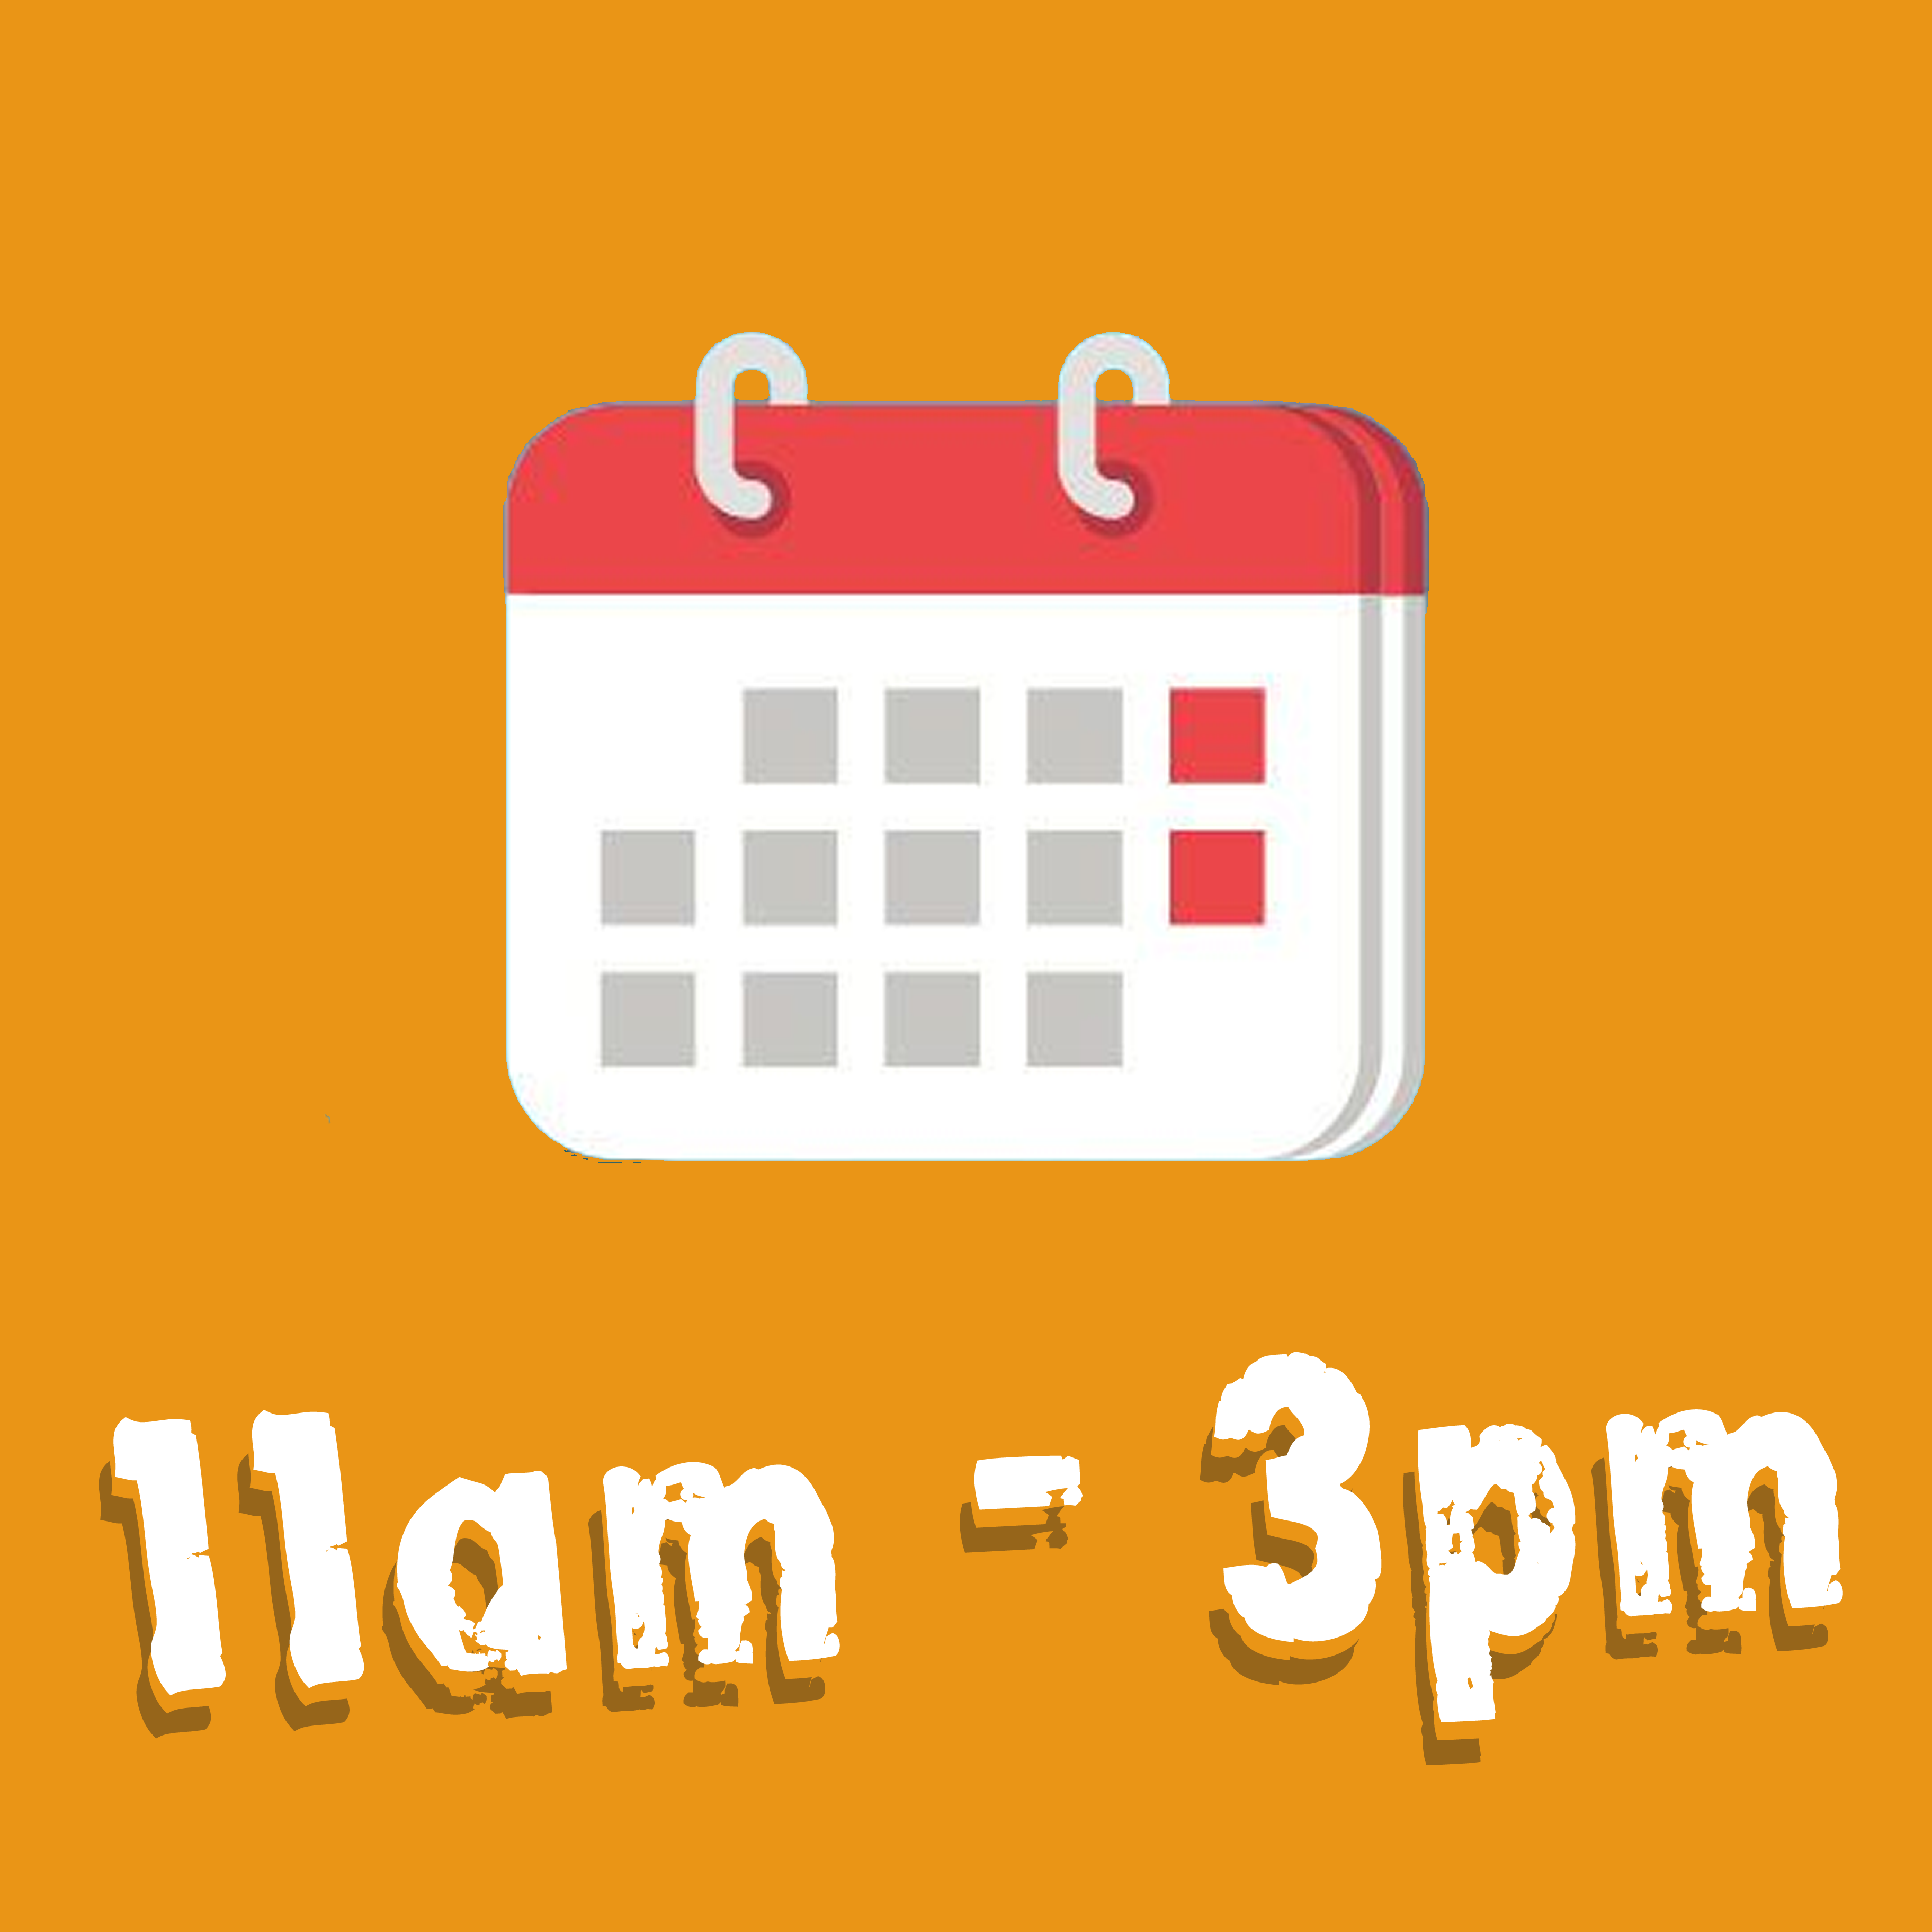 Week Day Term Time Visit 11am - 3pm